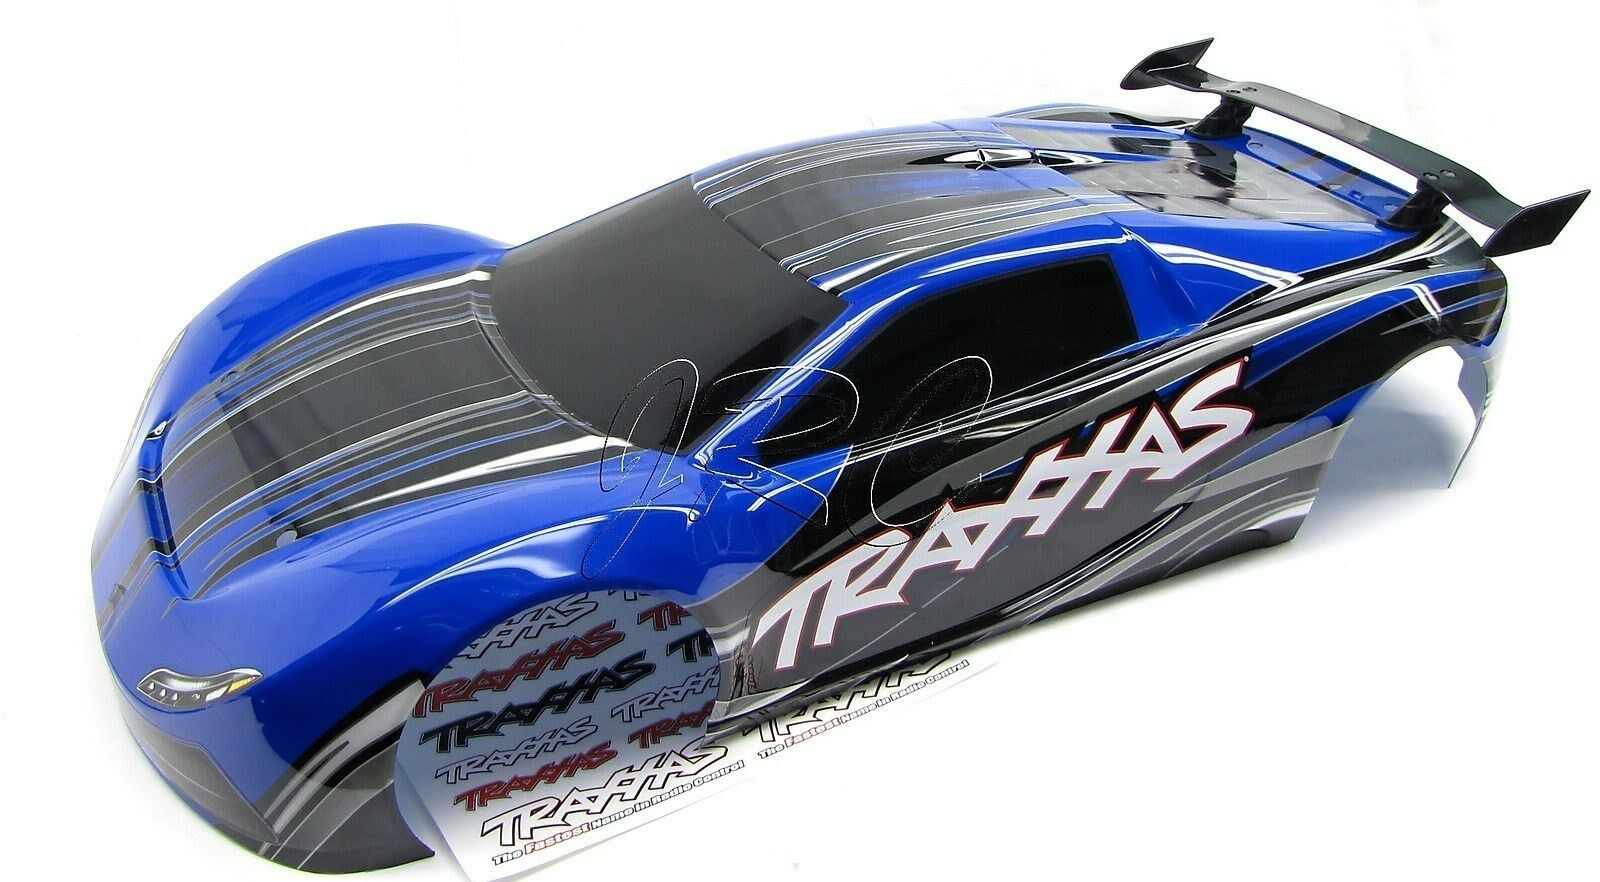 Best traxxas deals